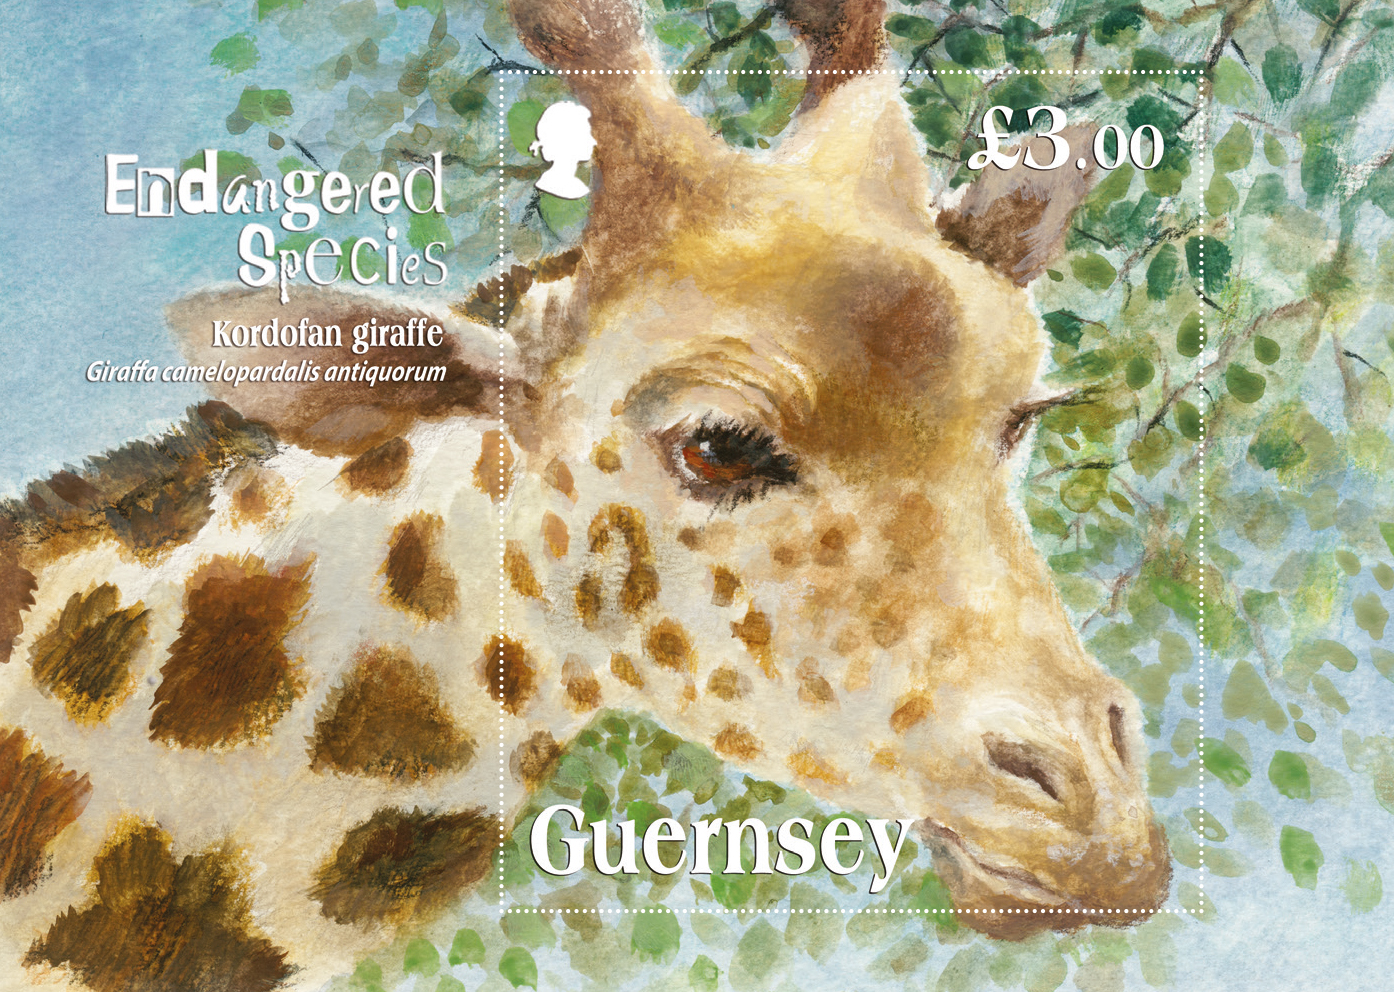 Miniature sheet depicts critically endangered Kordofan Giraffe